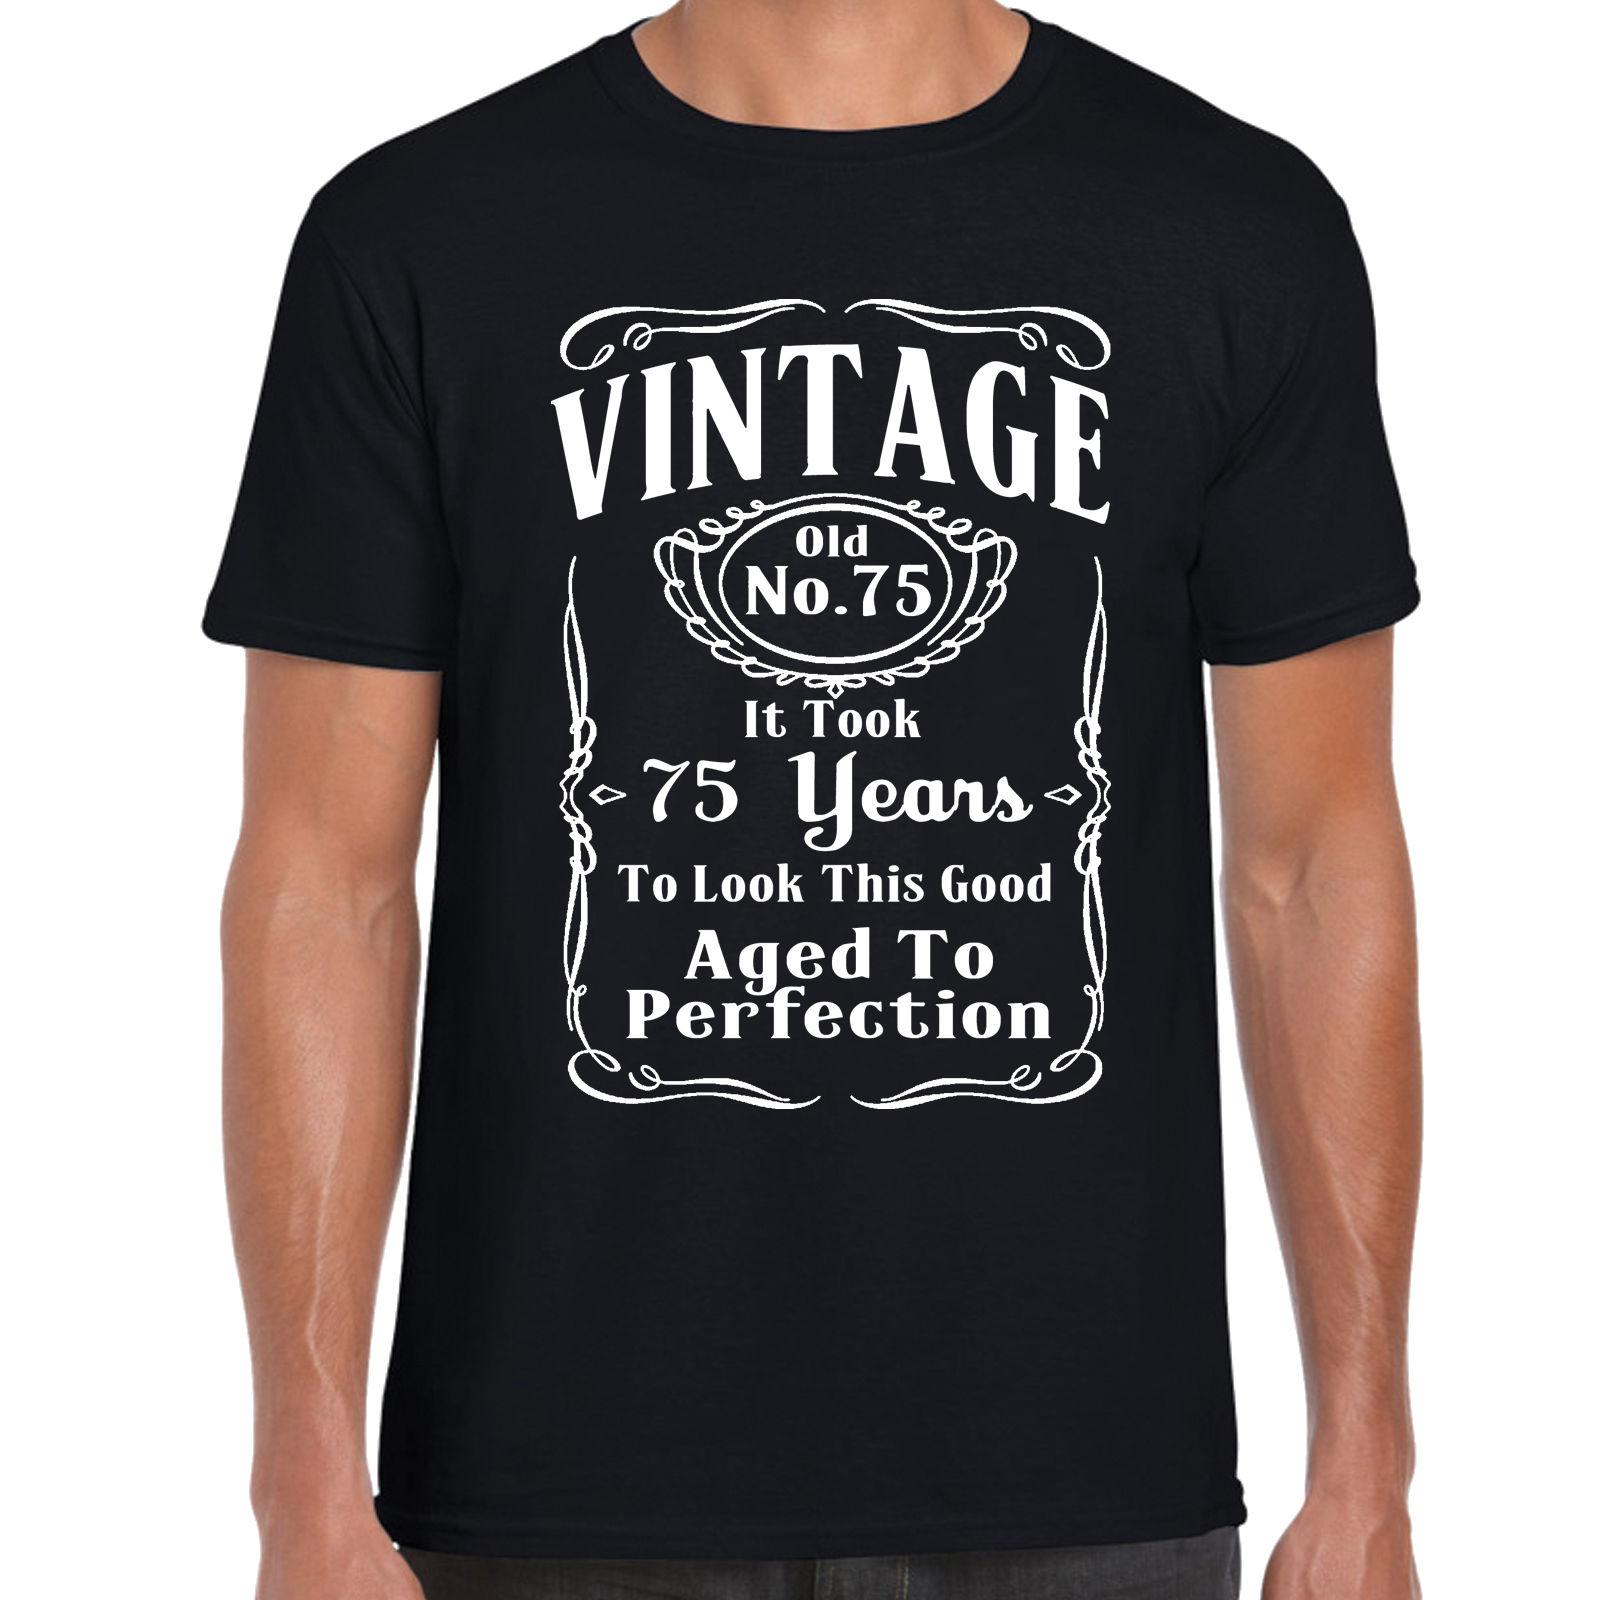 Grabmybits Vintage 75th Birthday T Shirt FunnyGift 75 Years Old Retirment MENS SHIRT Tee Printed Men O Neck Knitted Shirts With Sayings